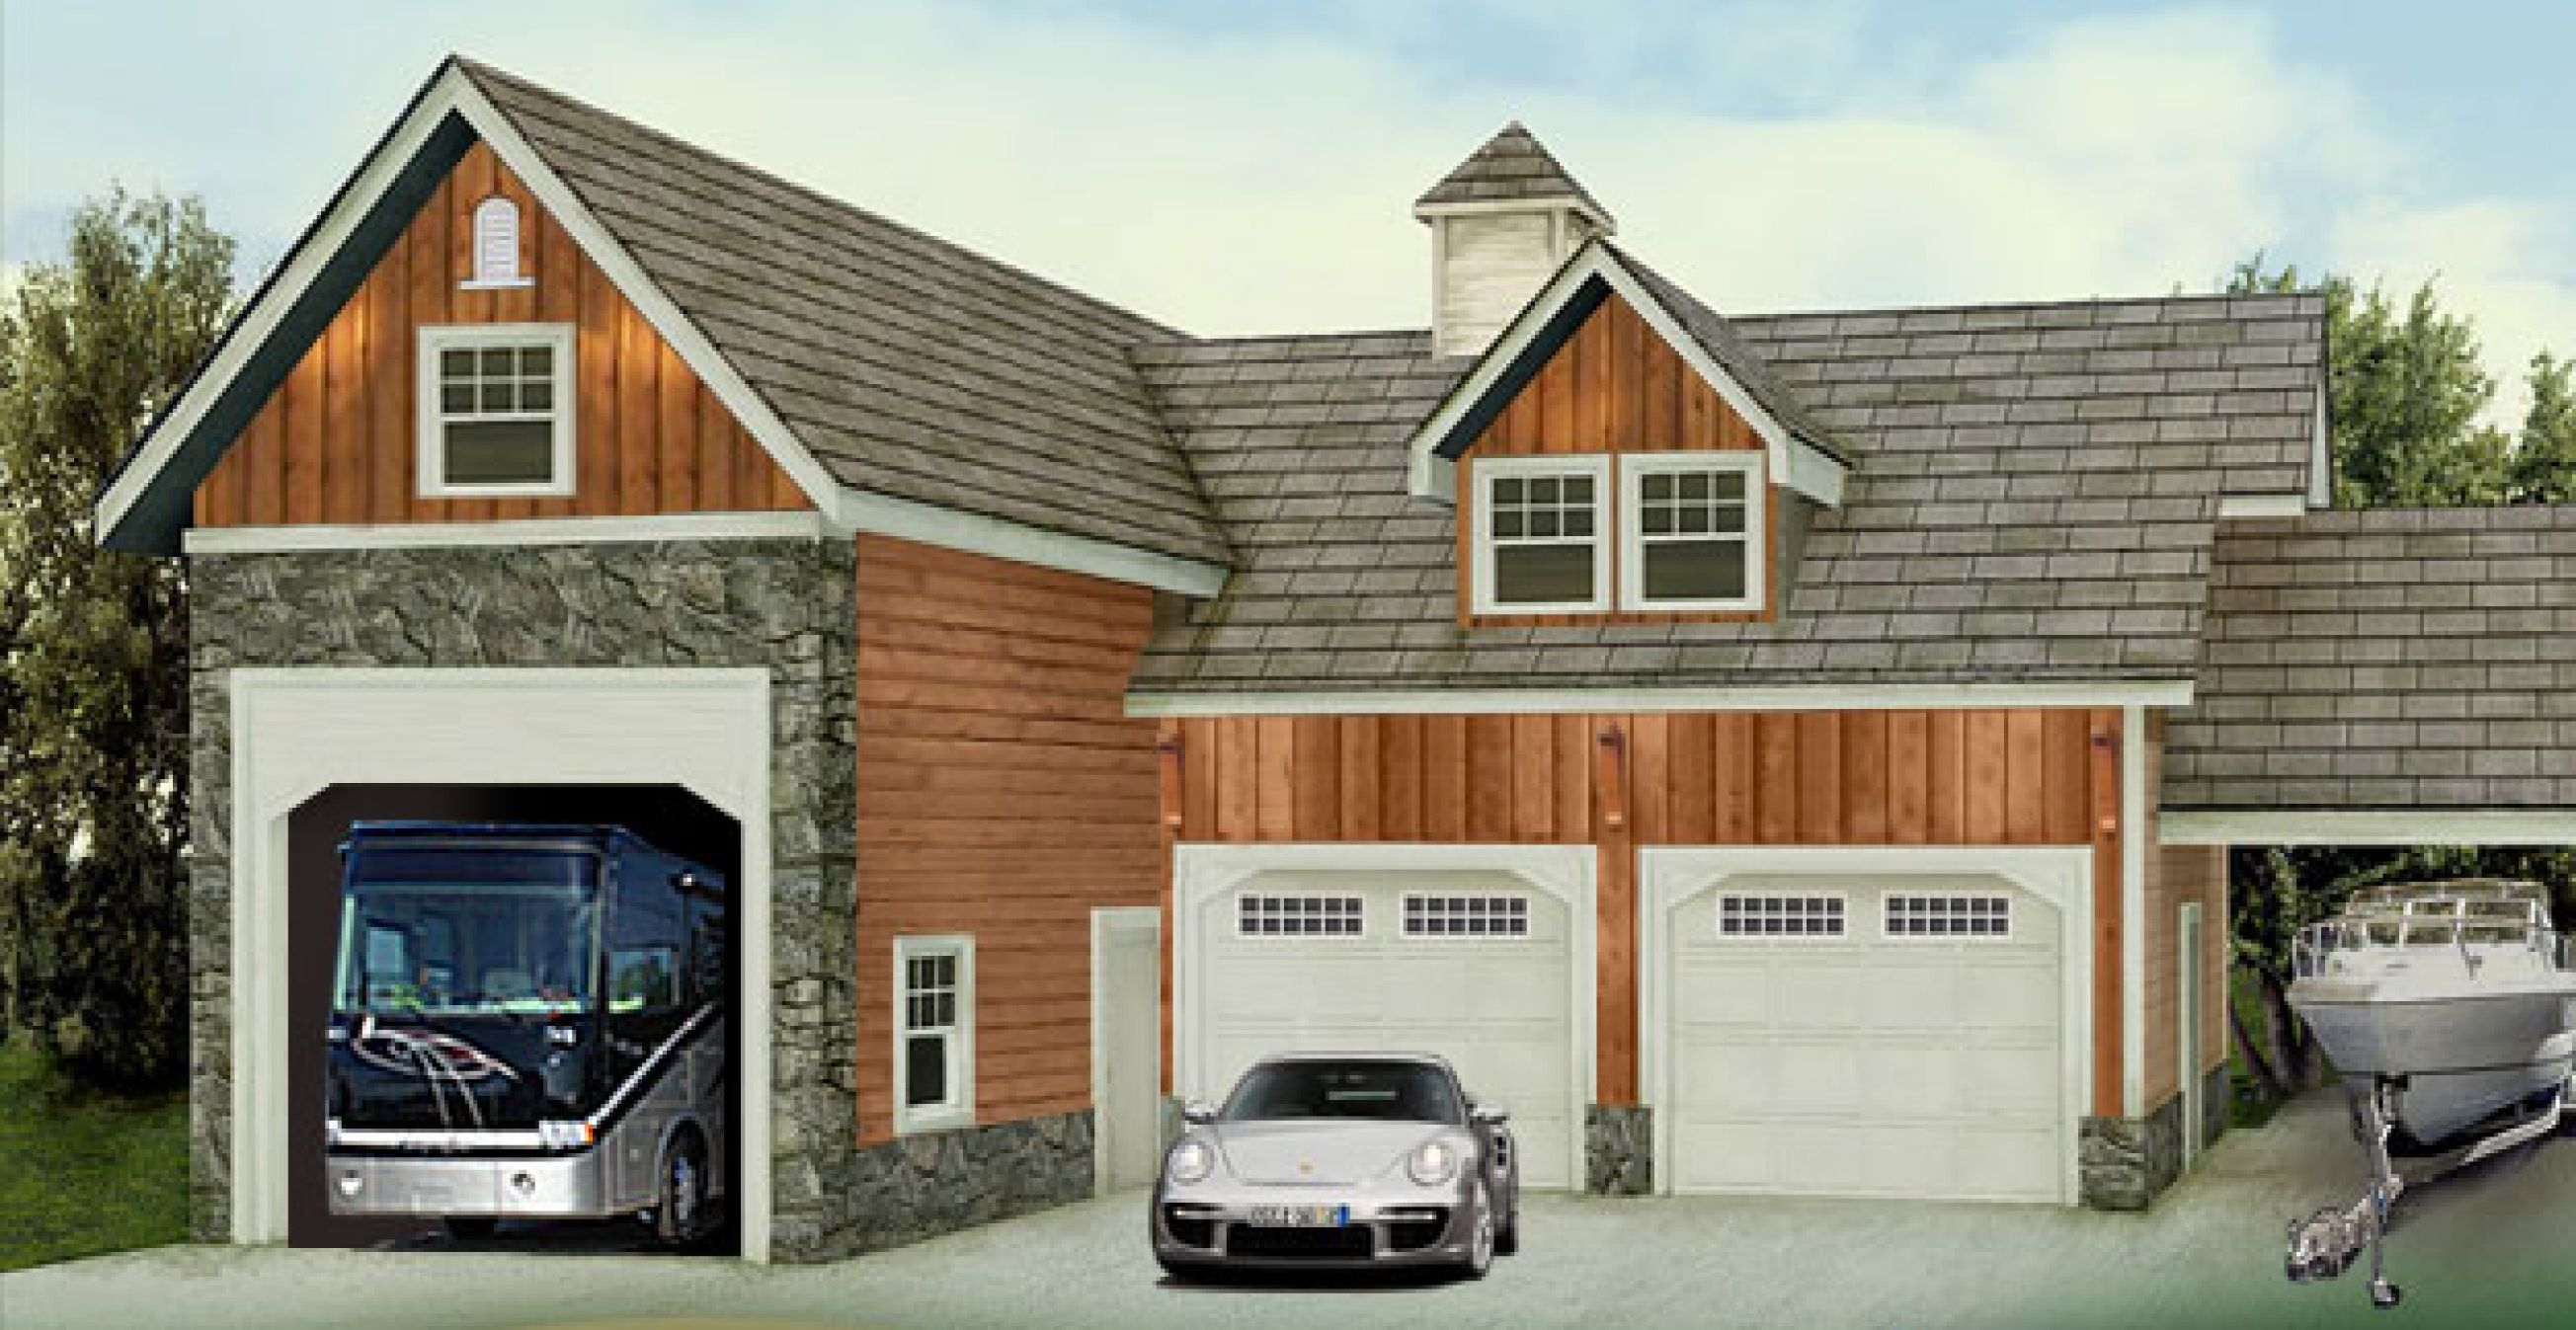 Rv garage i 39 d convert the two smaller garages into a for Barn home builders near me